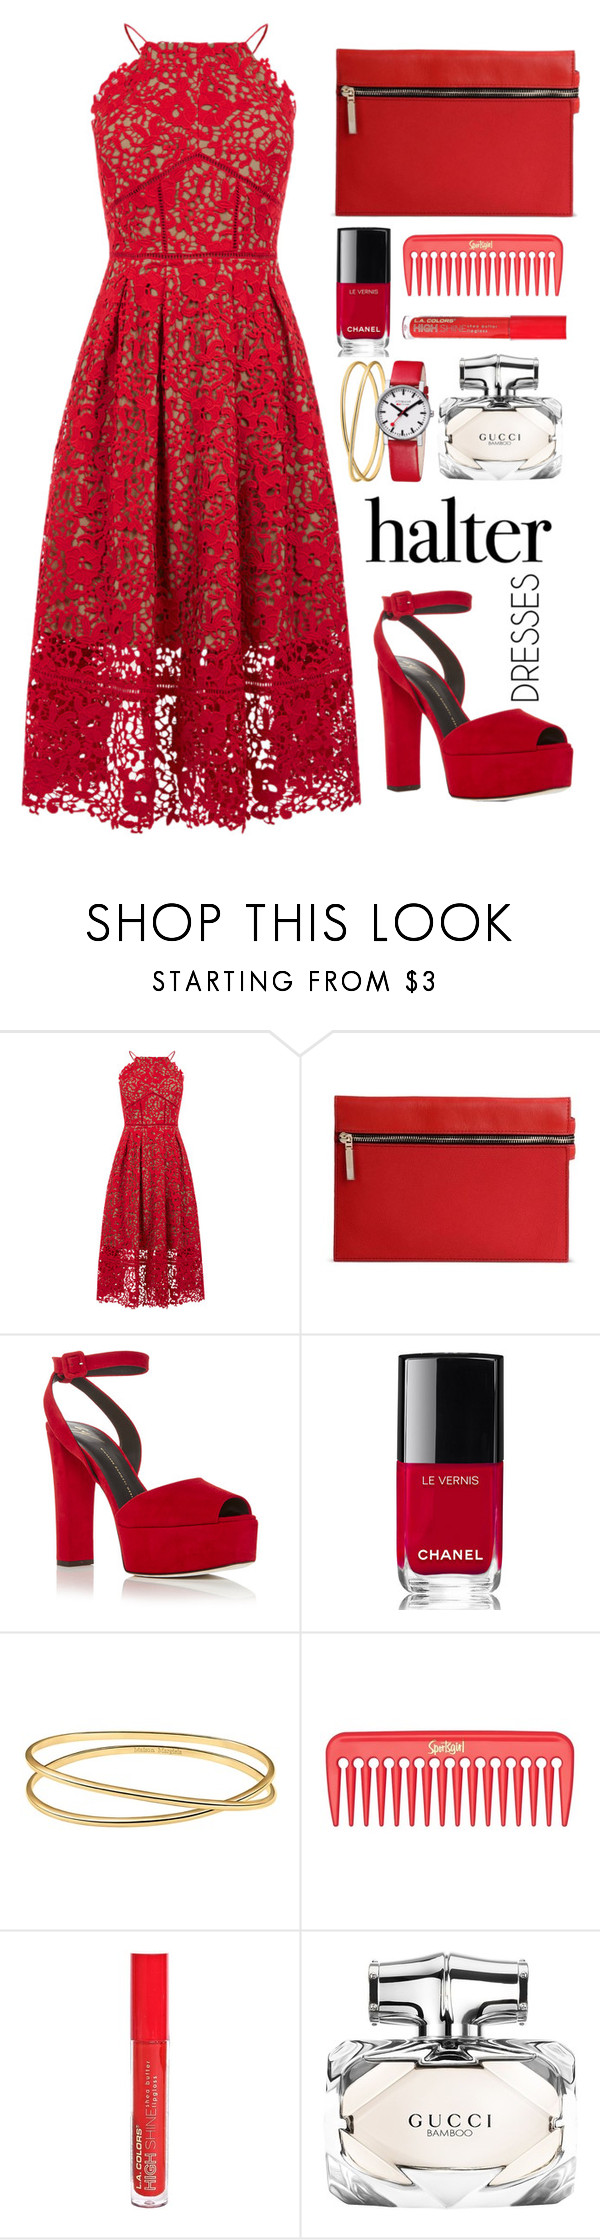 """""""Red"""" by lina-horan69 ❤ liked on Polyvore featuring Warehouse, Victoria Beckham, Giuseppe Zanotti, Chanel, Maison Margiela, L.A. Colors, Gucci, Mondaine and halterdresses"""